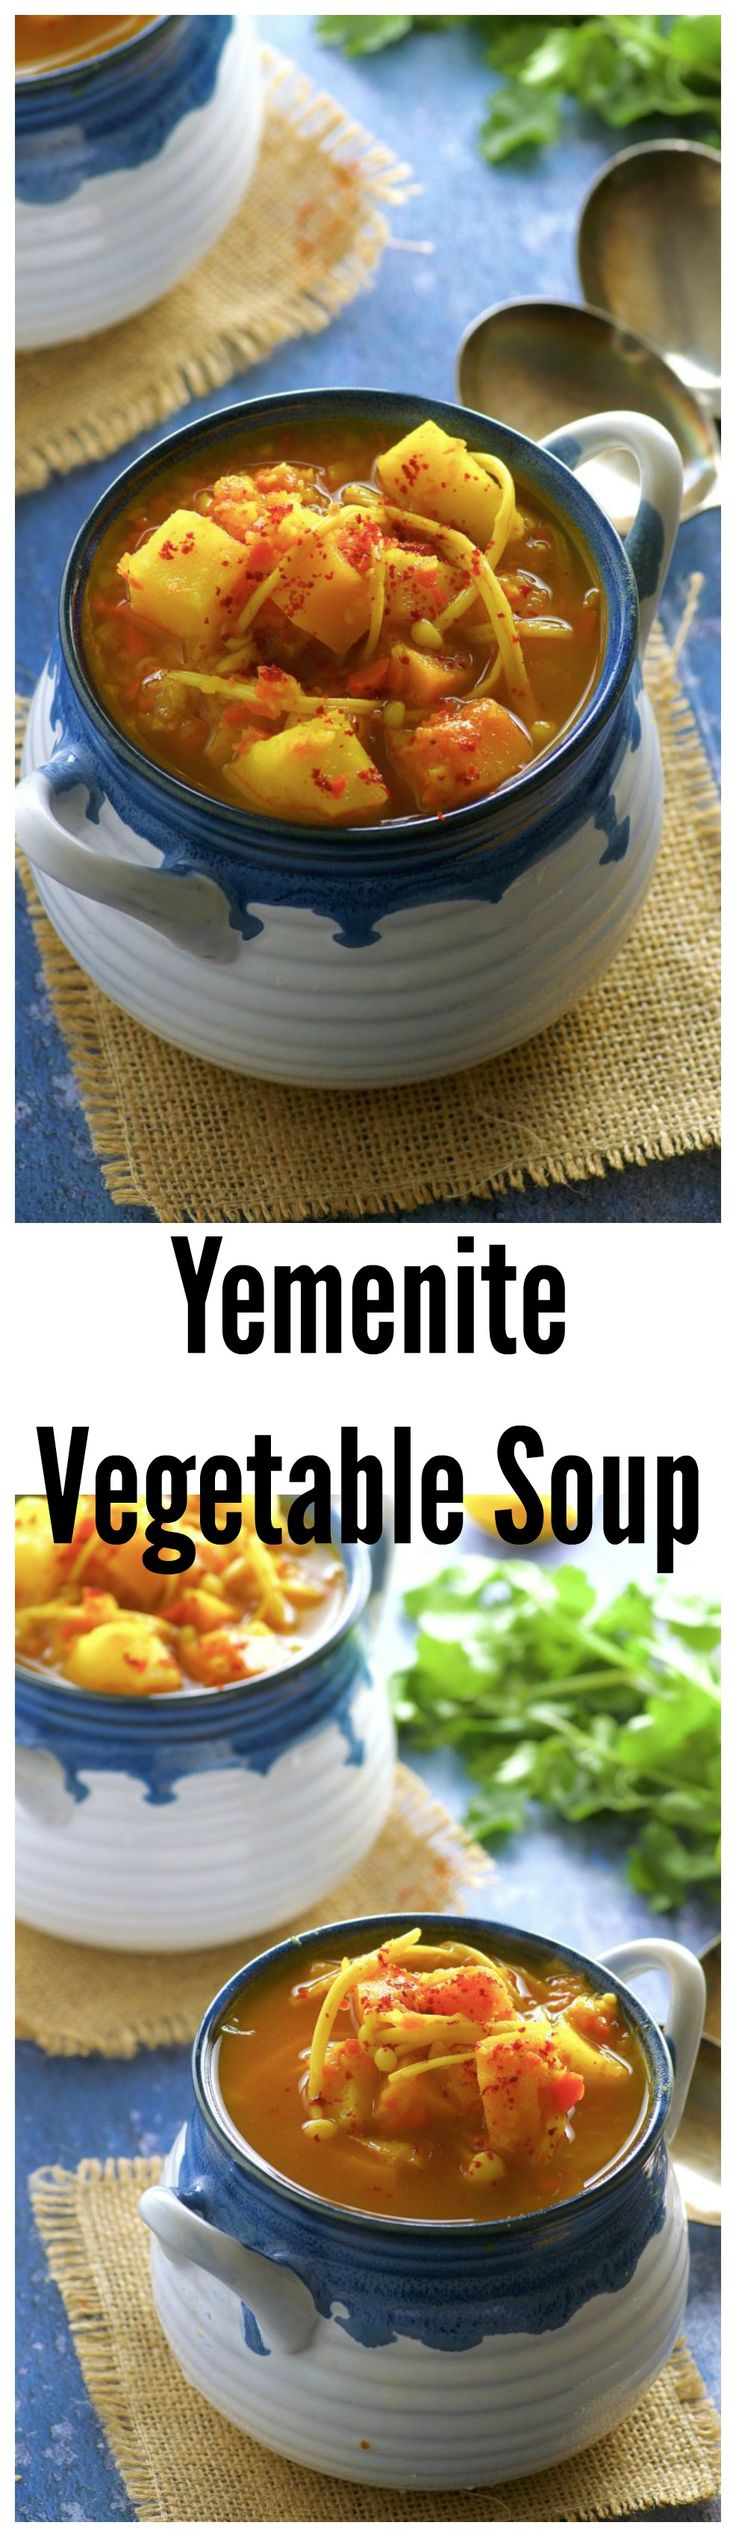 Curl up with a bowl Yemenite Vegetable Soup, read your favorite book or watch your favorite TV show. Deliciously spiced, warm and satisfying